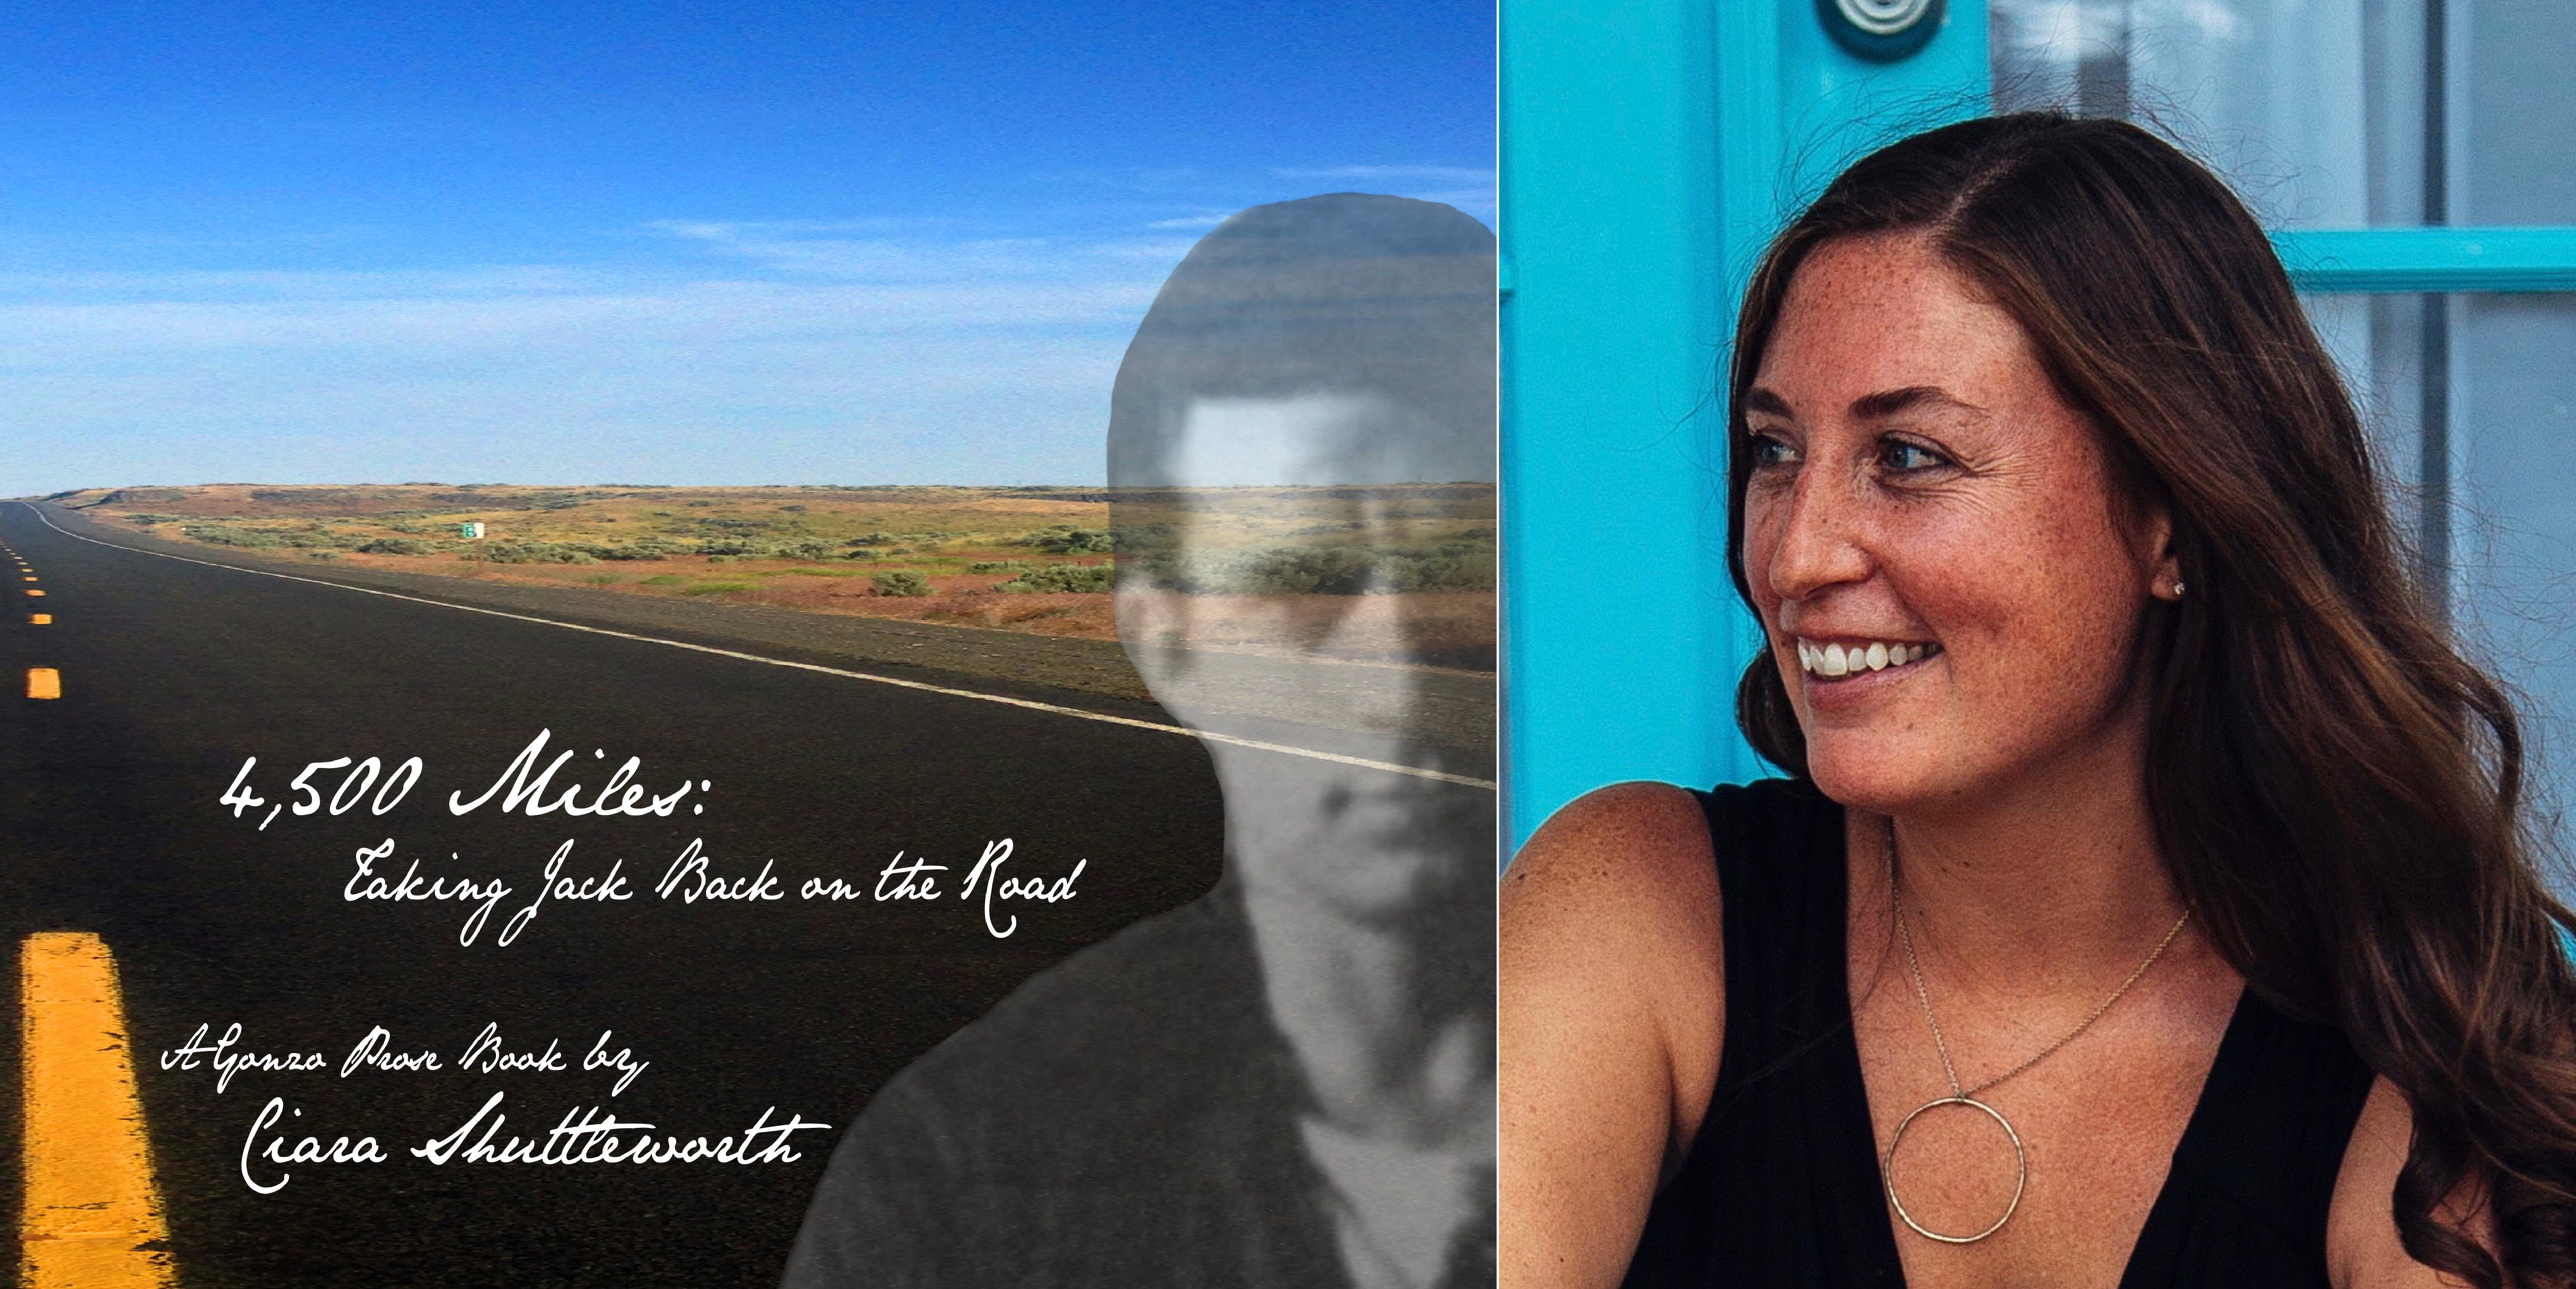 The Gonzo Prose of Ciara Shuttleworth and 4,500 Miles: Taking Jack Back On The Road